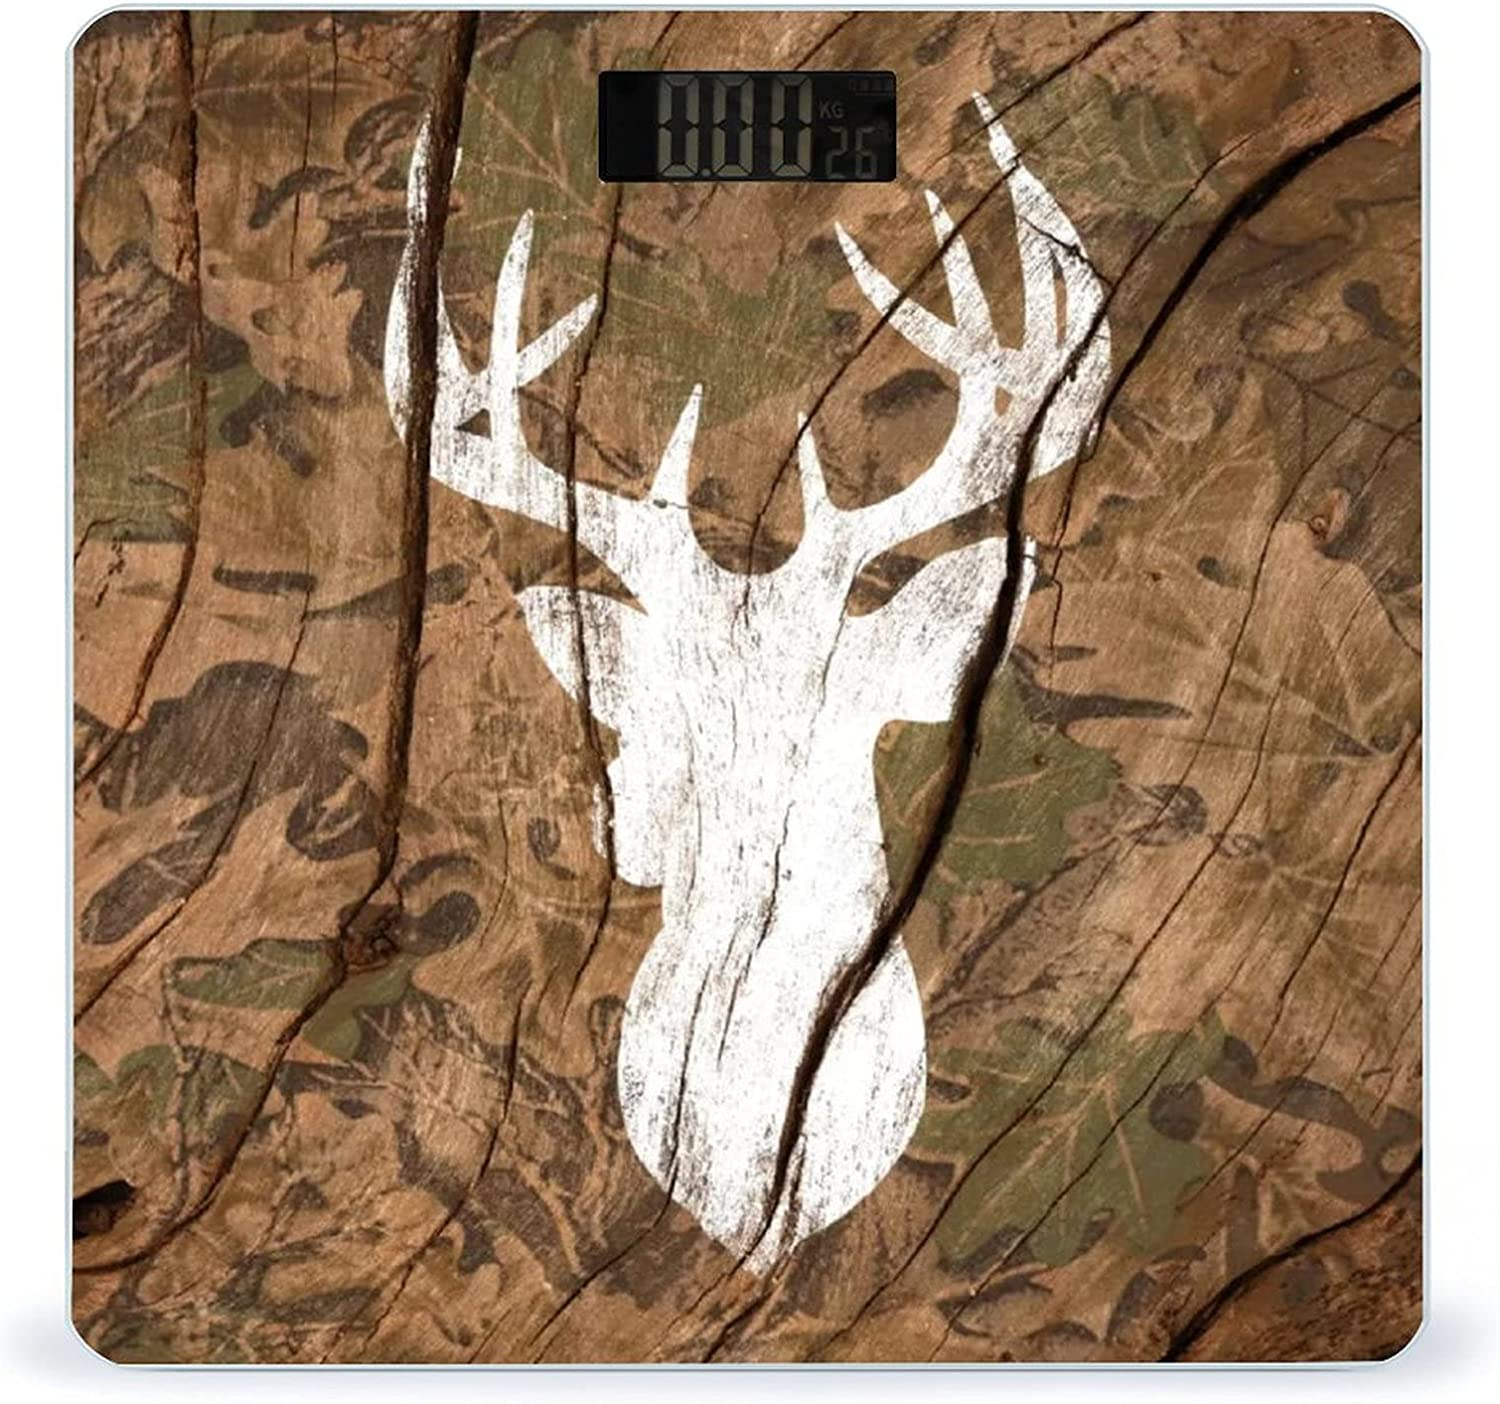 CHUFZSD Ranking TOP19 Camouflage Deer Art Highly Scale online shopping Fitness Smart Accurate